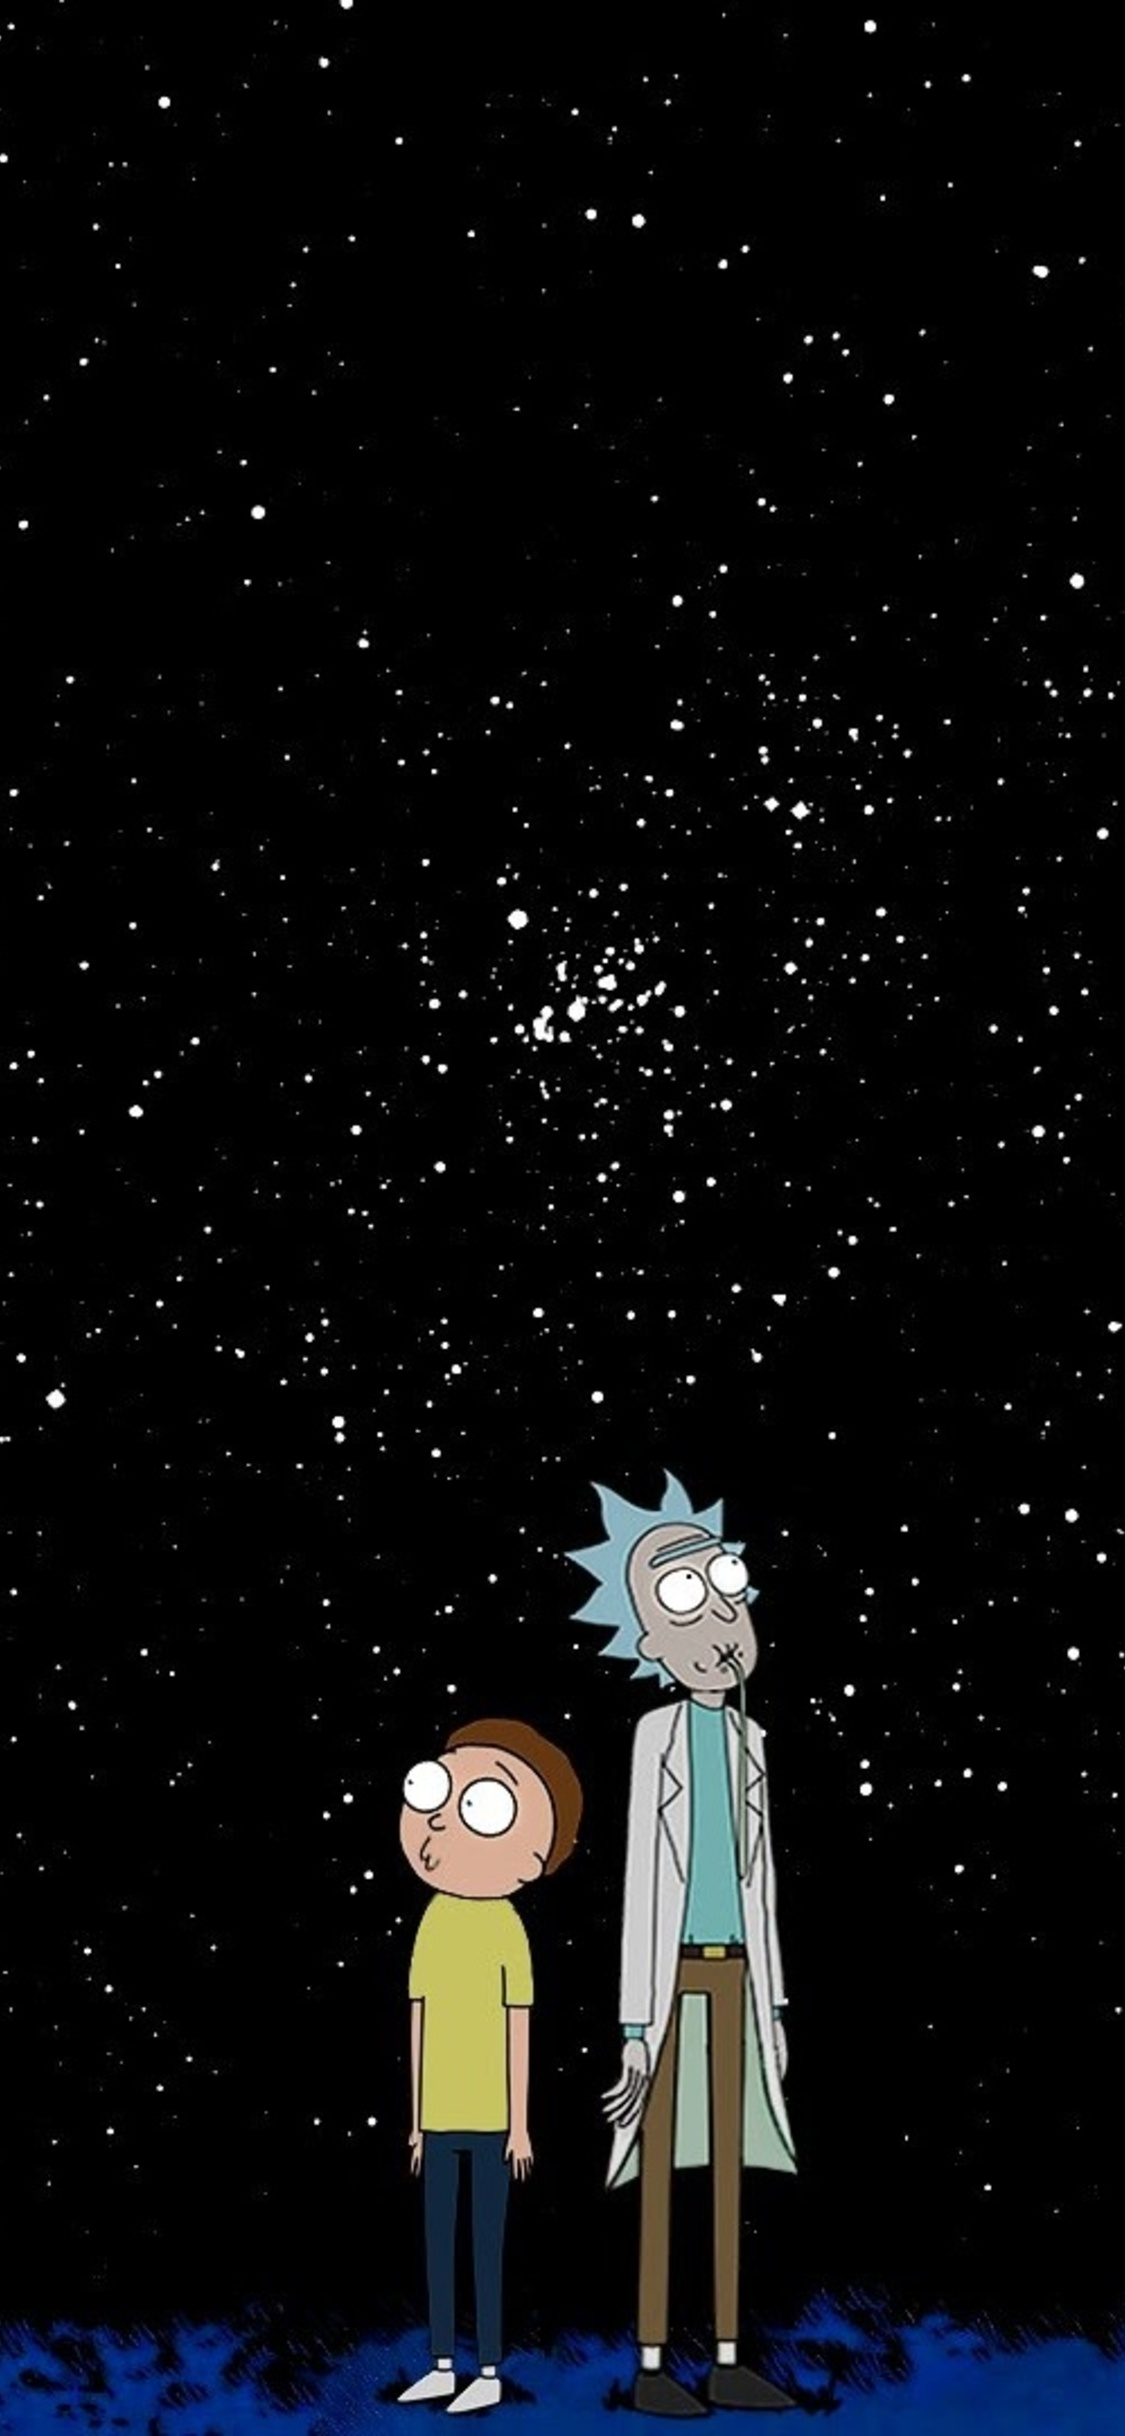 Rick And Morty Wallpaper Iphone X : morty, wallpaper, iphone, Morty, Wallpaper, Iphone